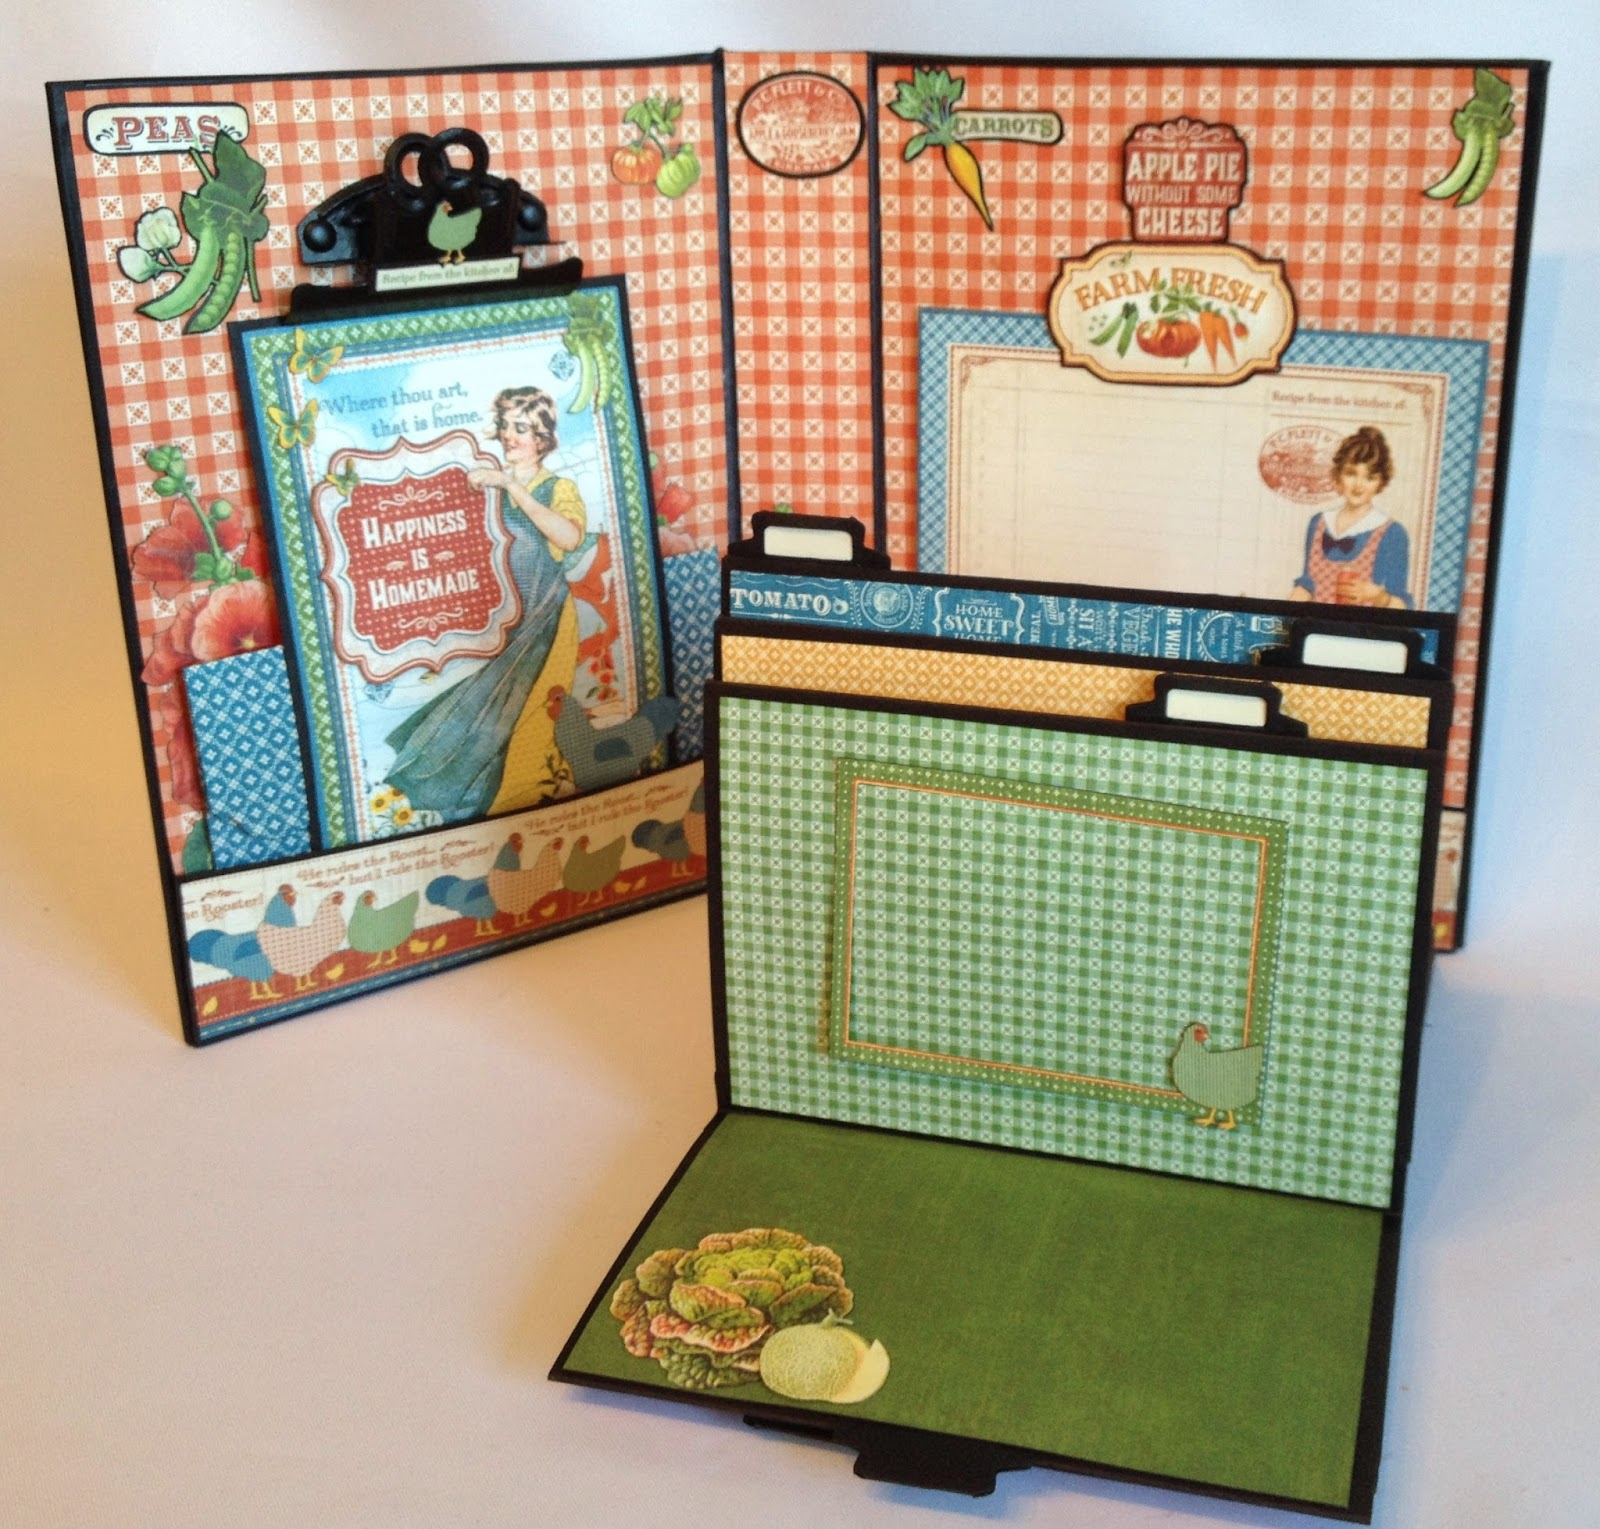 How to make scrapbook vintage - All The Pages Can Be Folded In Different Directions Depends On How You Like Them Displayed